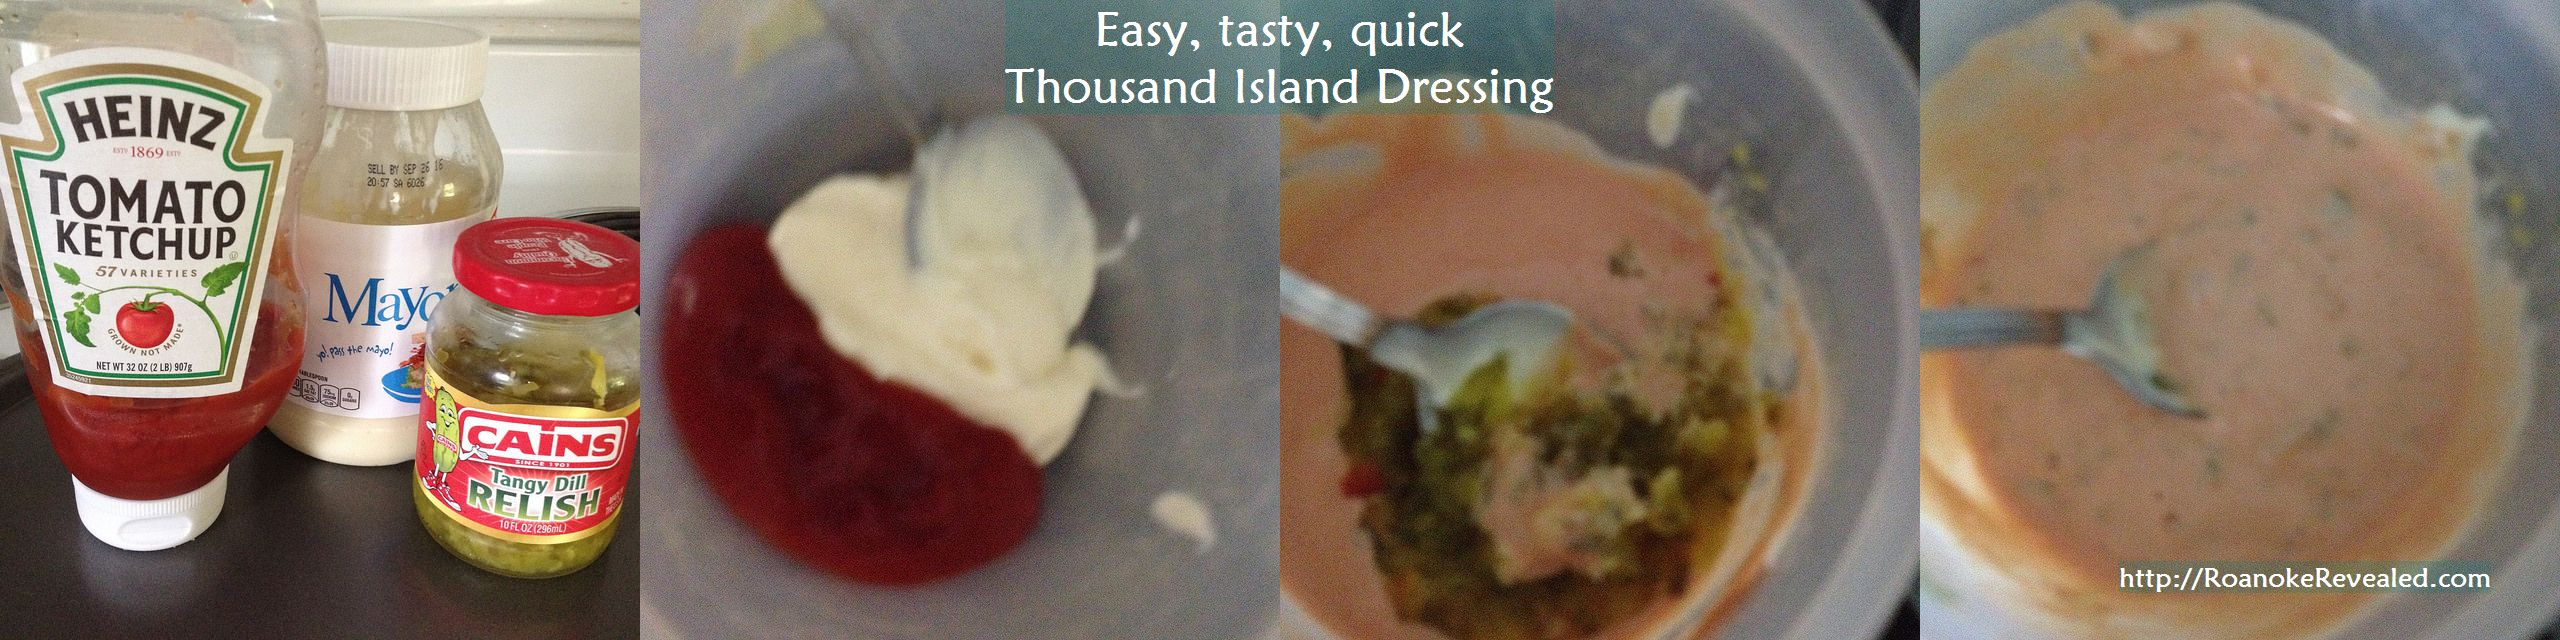 Quick & easy recipes, including Thousand Island dressing, at http://RoanokeRevealed.com